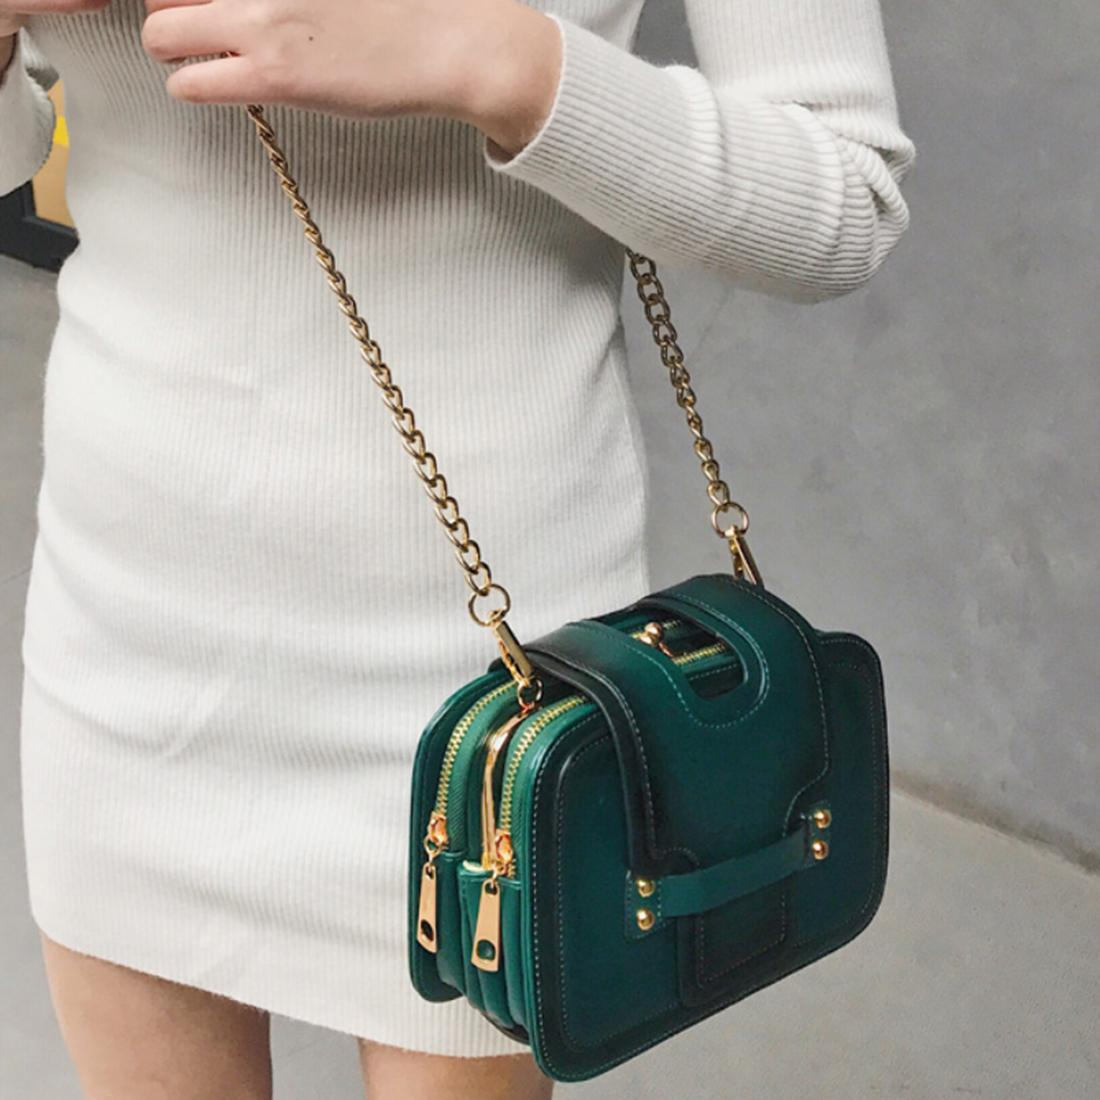 Korean Style PU Leather Bag Chain Shoulder Bag Crossbody Bag for Girls and Women - Dark Green